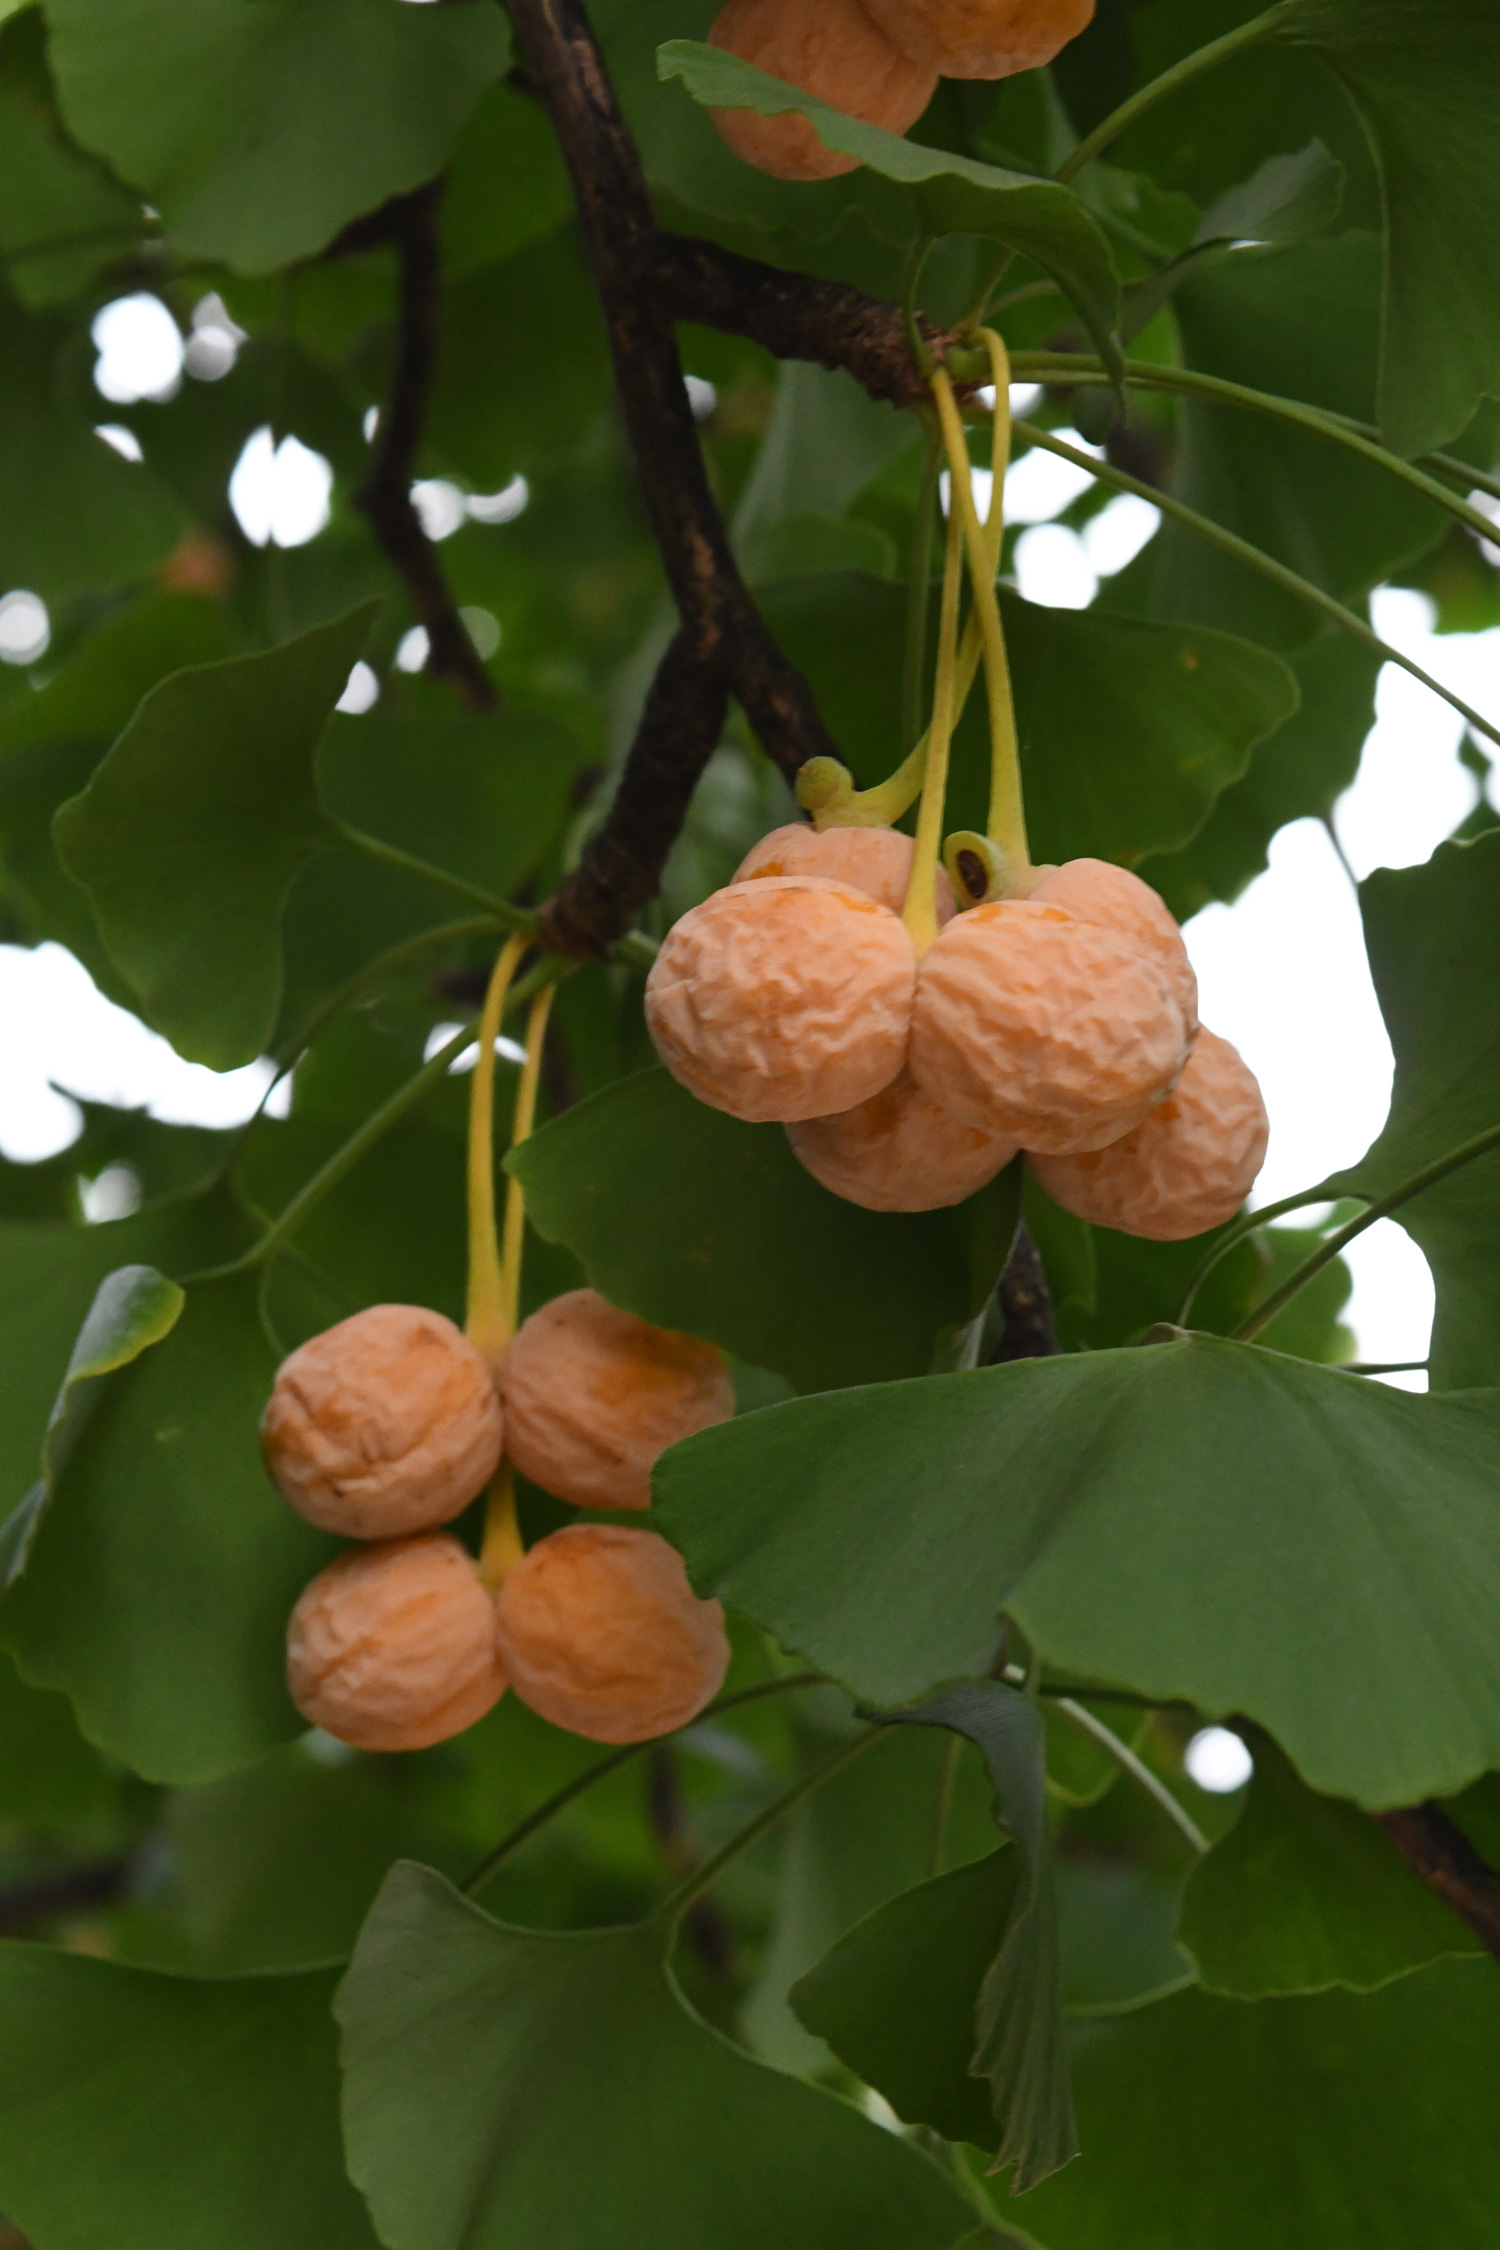 Gingko fruit, Prospect Park